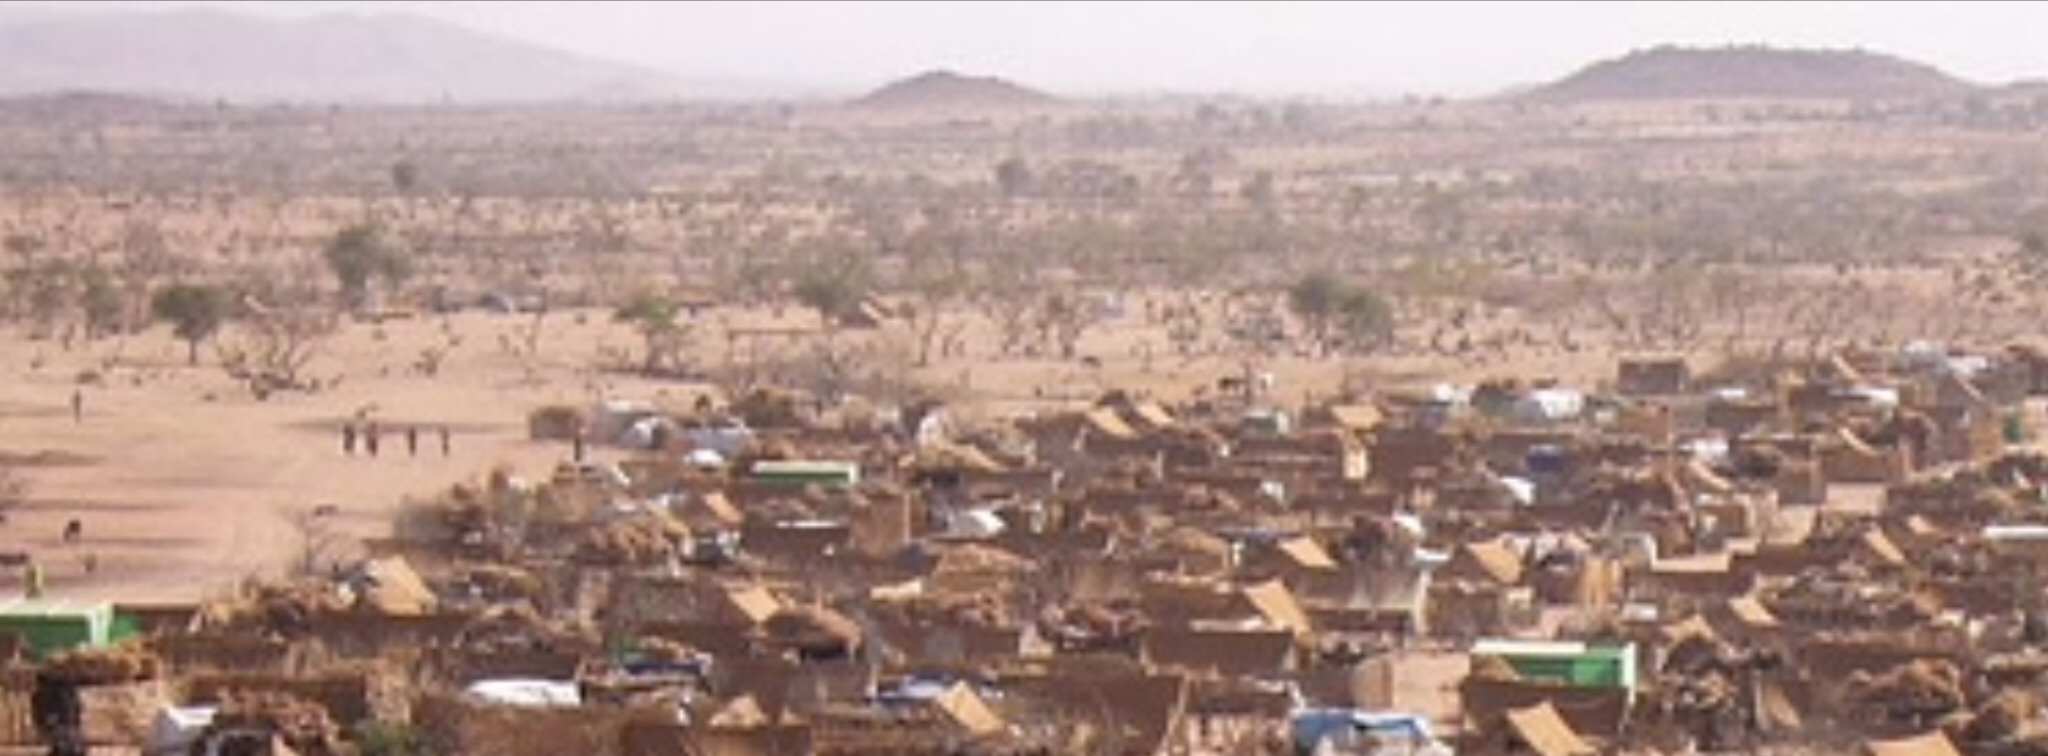 "Darfur: HRW for ""gradual withdrawal"""